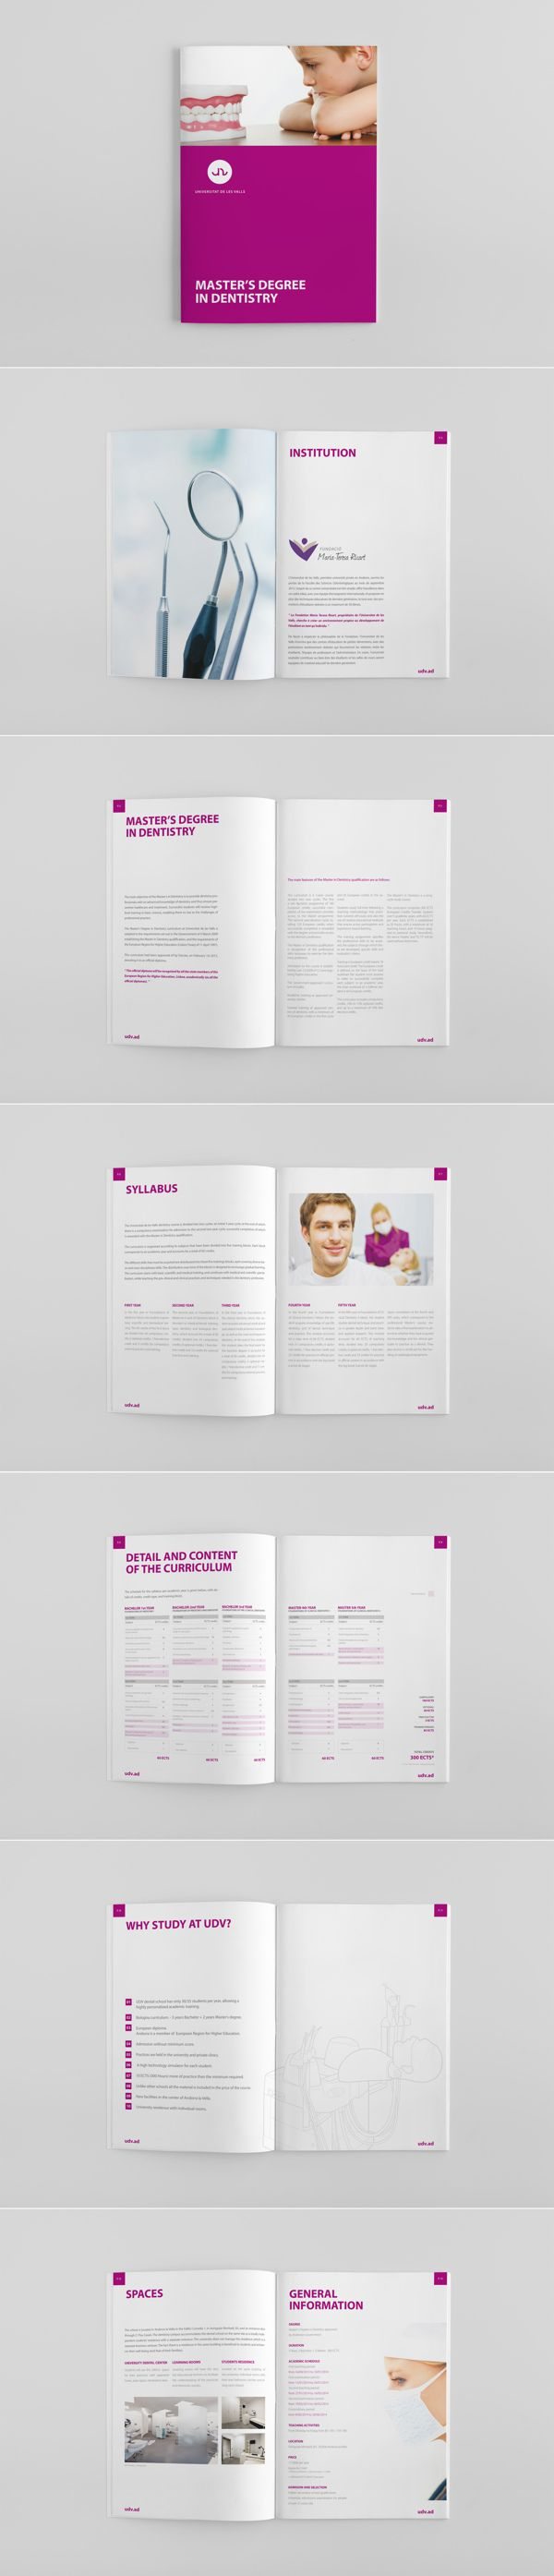 Dental Medicine brochure for UDV Universitat de les Valls by Roger Cortés, via Behance